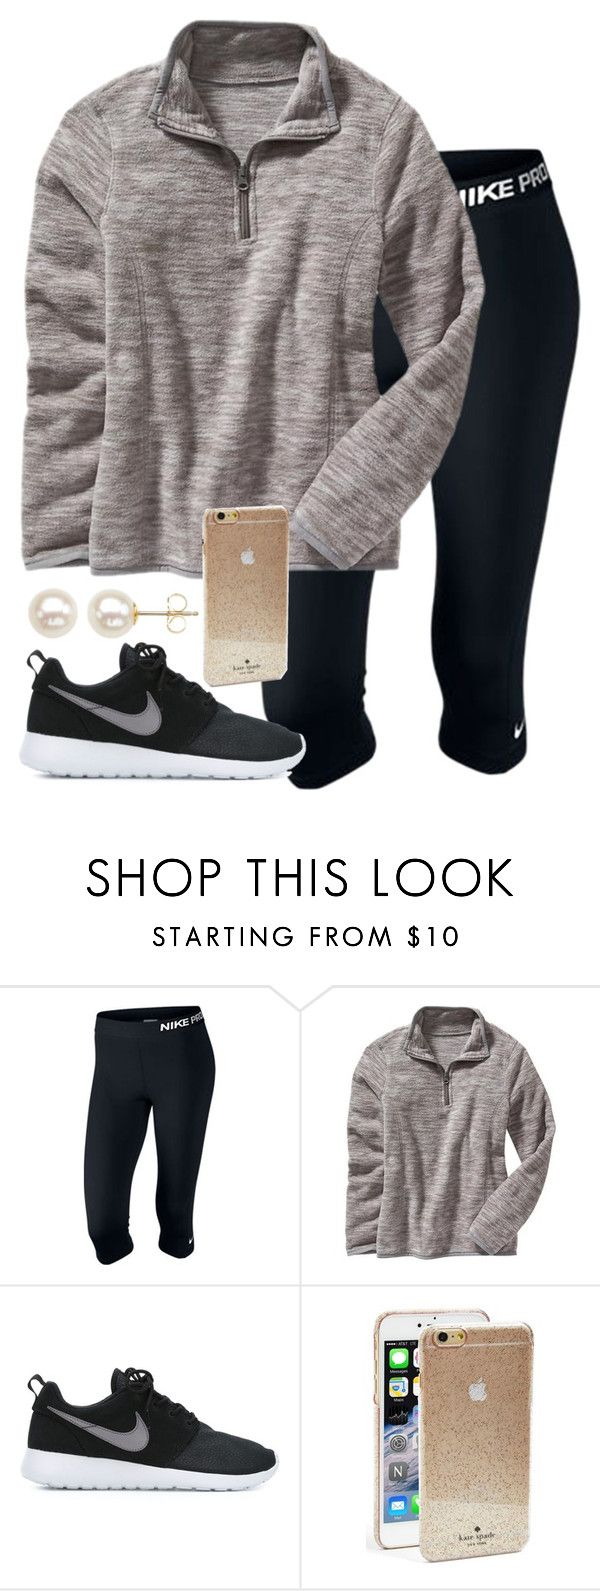 """I am too lazy to add anything else..."" by hgw8503 ❤ liked on Polyvore featuring NIKE, Old Navy, Kate Spade and Honora"